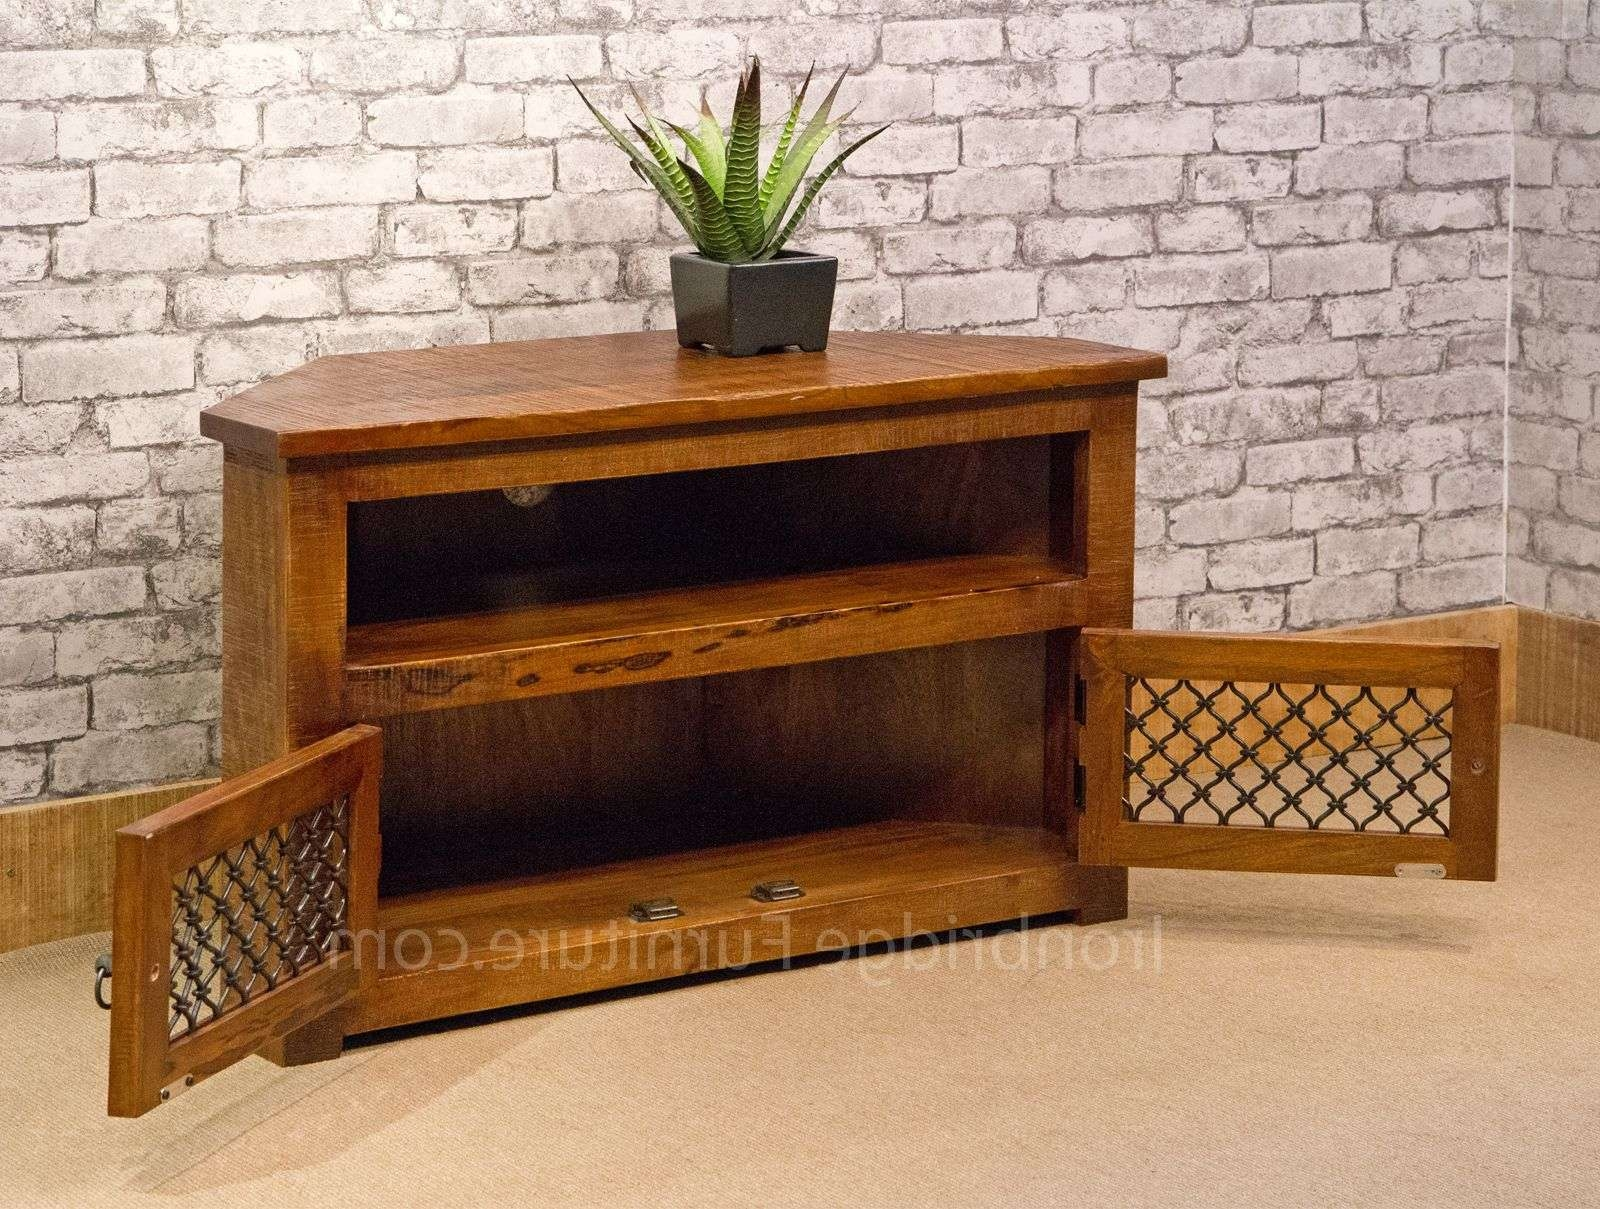 13 Jali Rustic Farm Corner Tv Stand 100cm For 100cm Tv Stands (View 3 of 15)